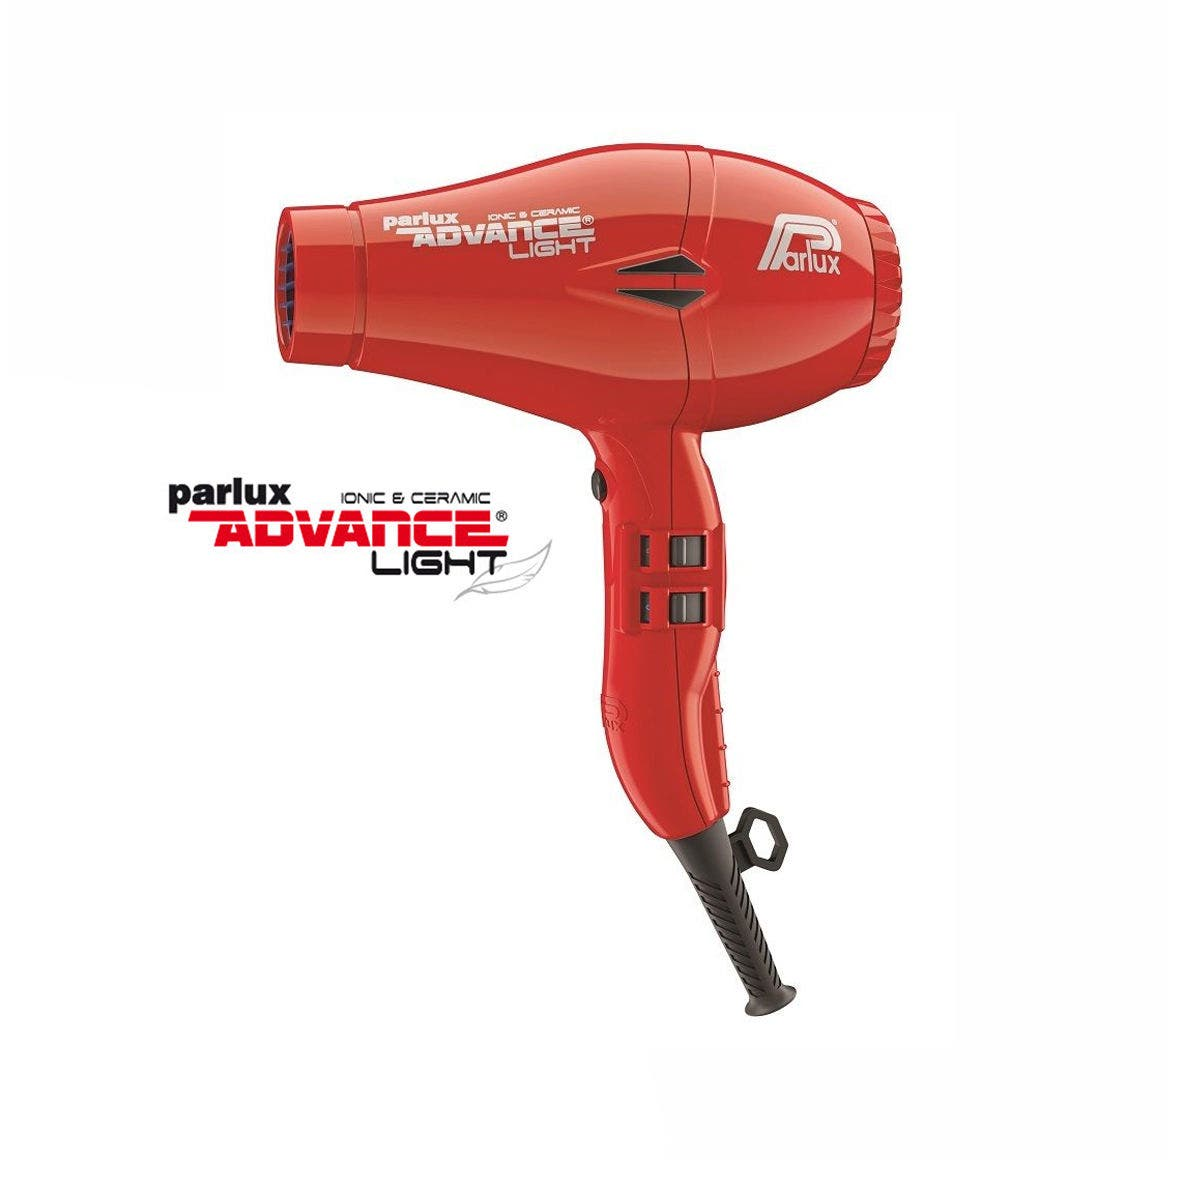 Parlux ADVANCE Light Hair Dryer Ionic & Ceramic - Red